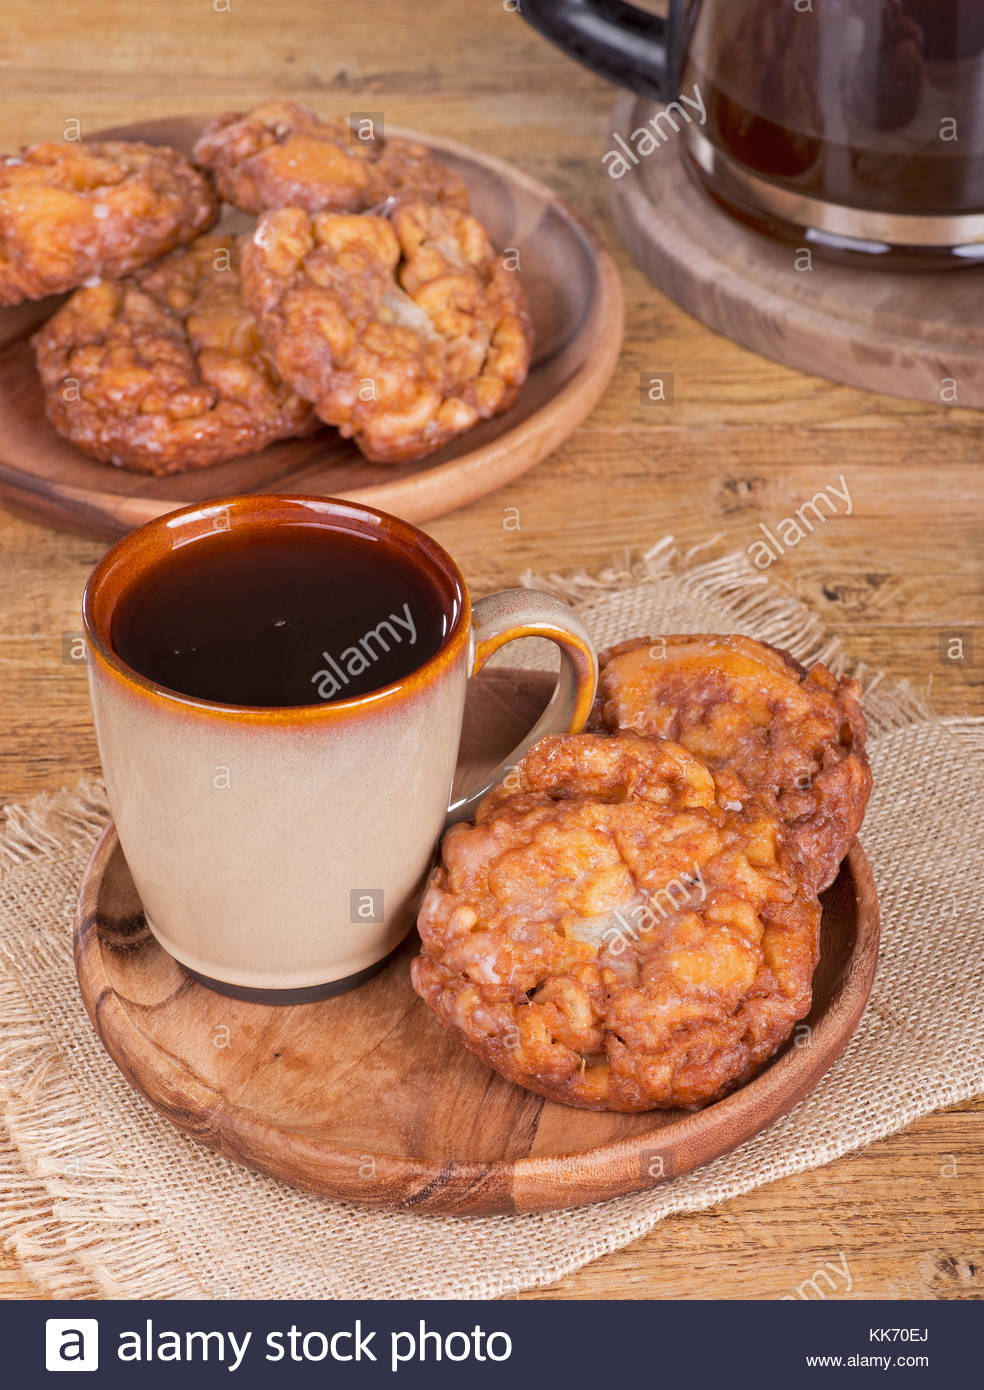 Name:  glazed-apple-fritters-and-cup-of-coffee-on-a-wooden-plate-KK70EJ.jpg Views: 53 Size:  241.3 KB